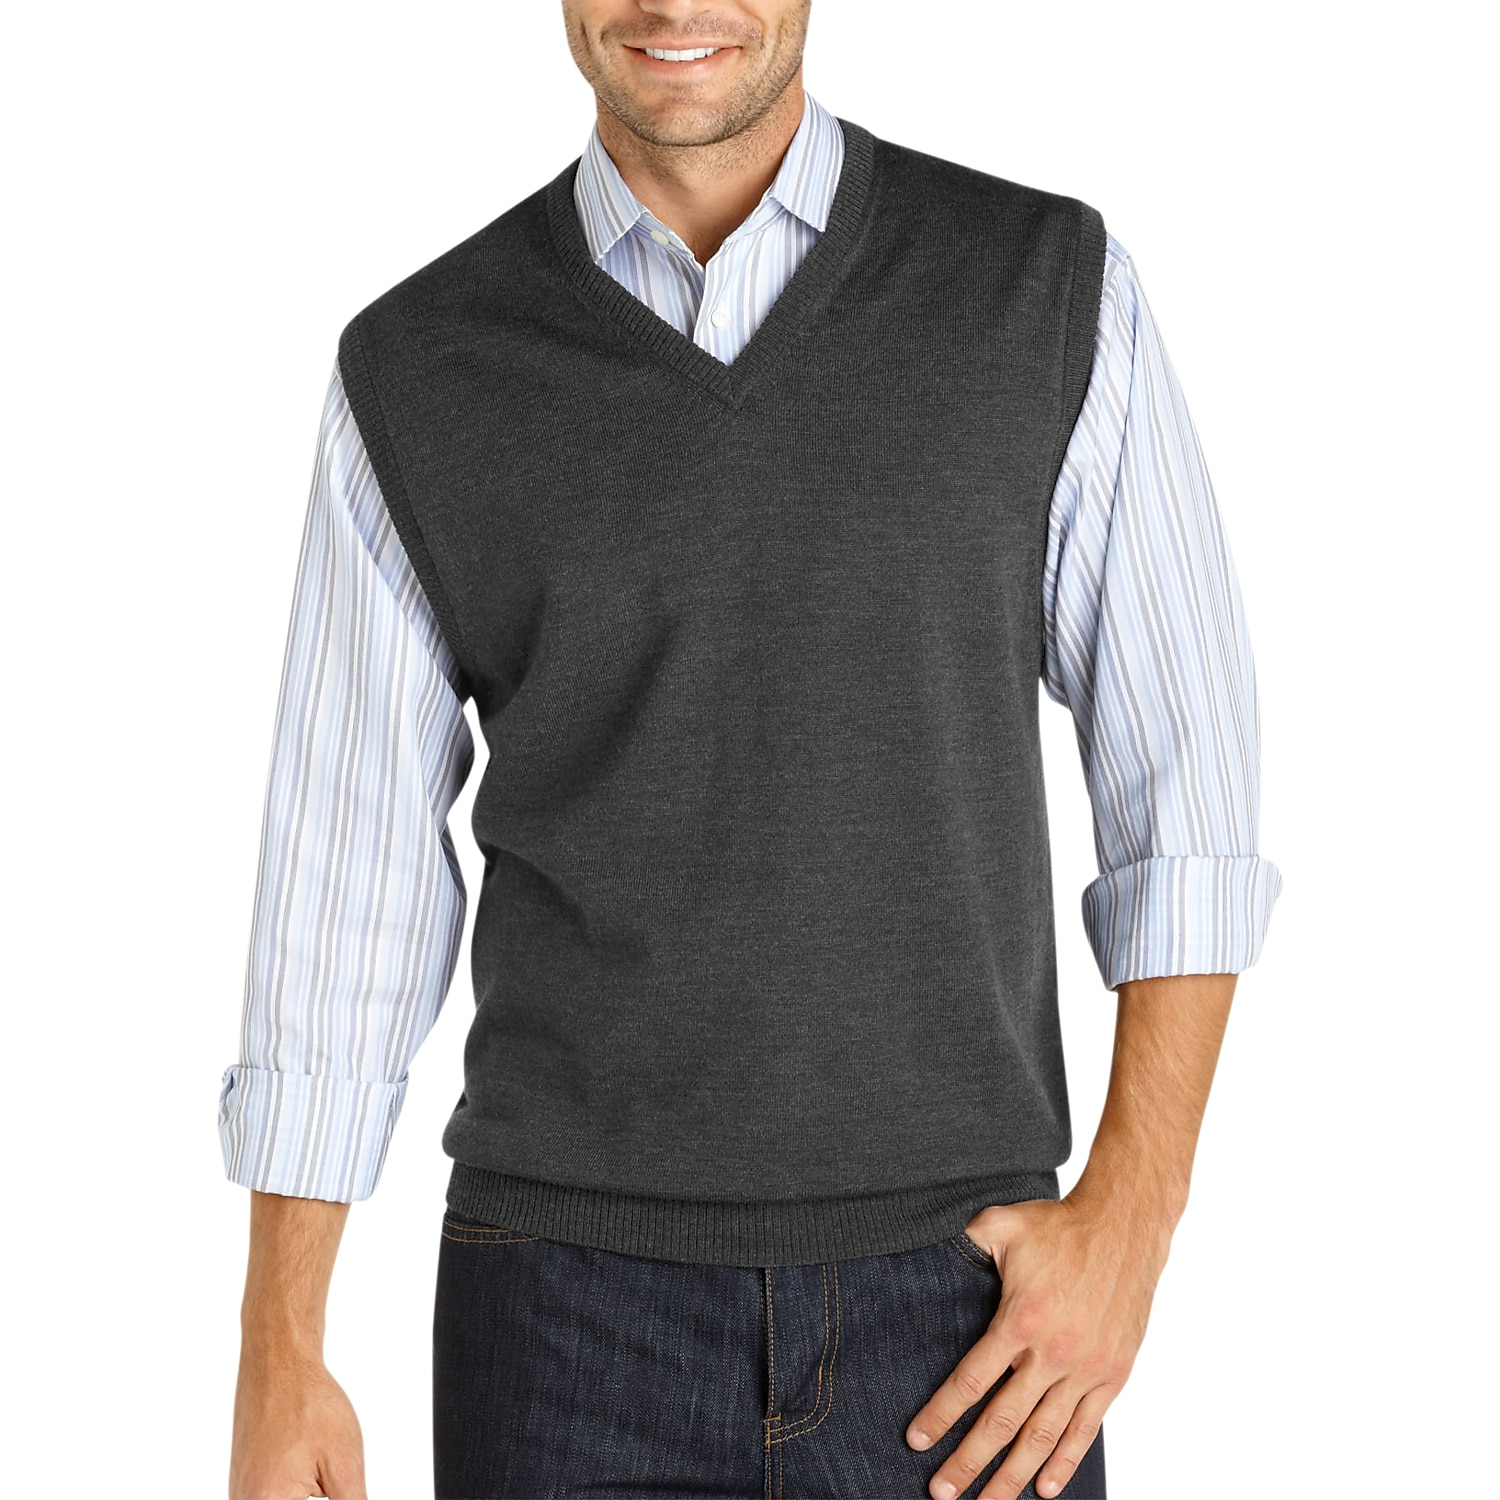 Sweater Vests - Men's Sweater Vests | Men's Wearhouse